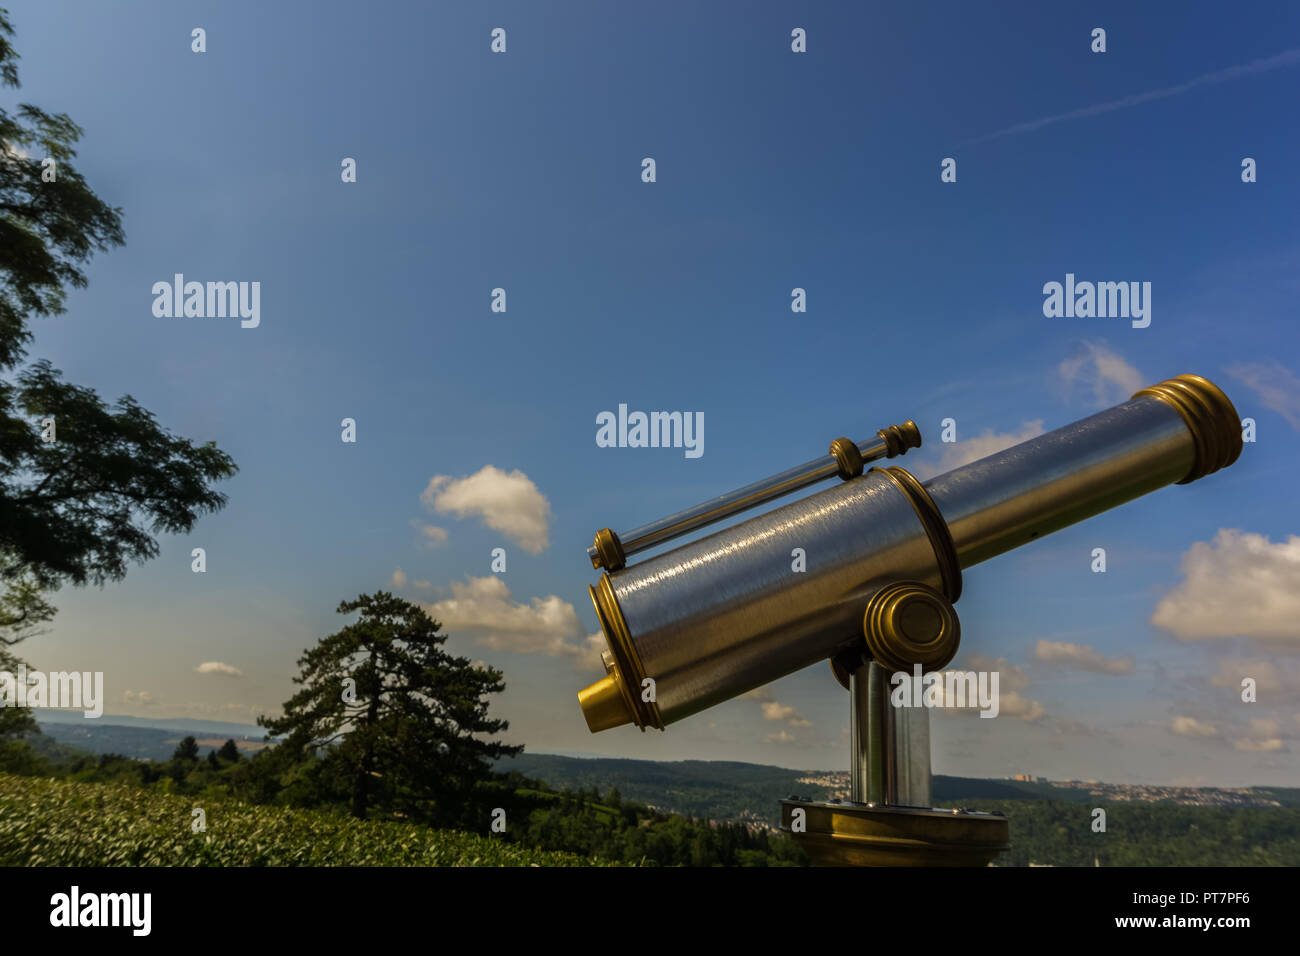 A telescope on a hill - Stock Image